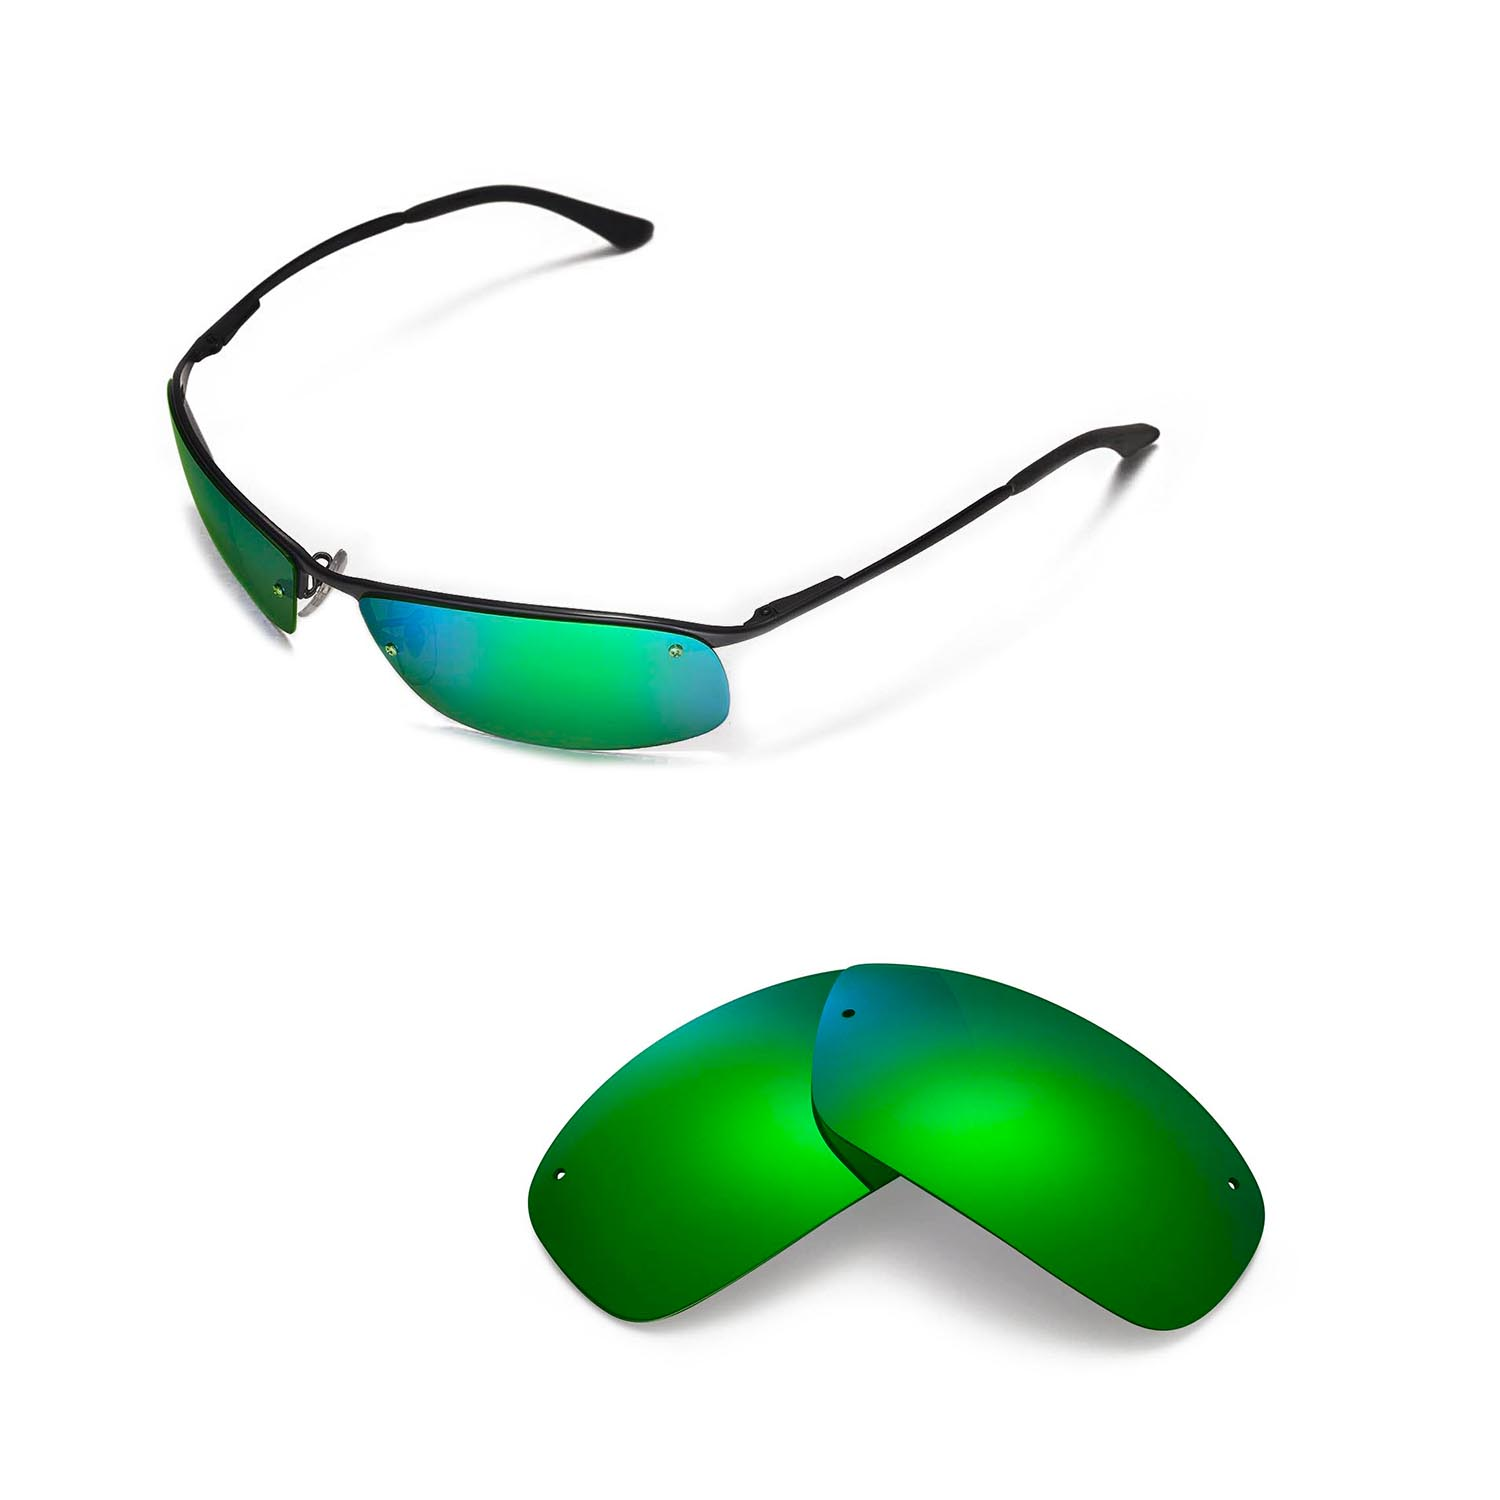 Walleva Polarized Lenses For Ray-Ban RB3183 63mm - Selected Color x1